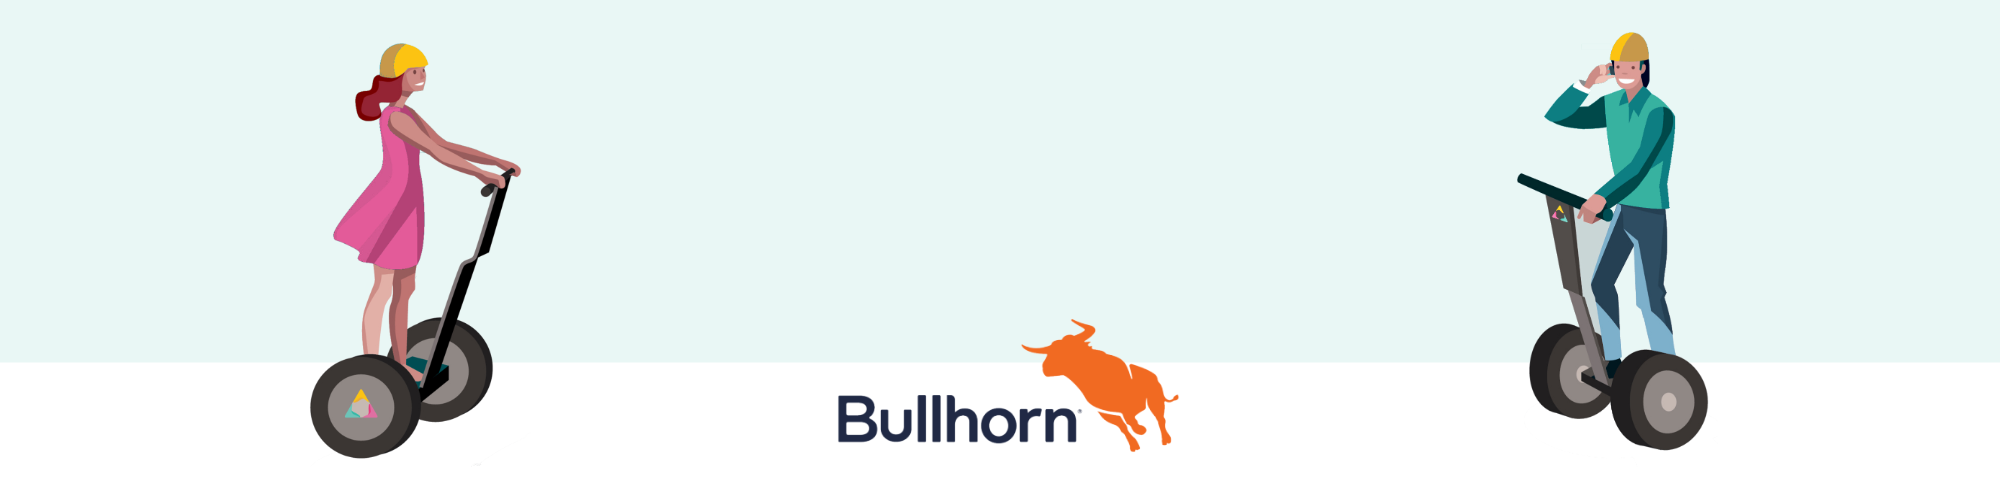 bullhorn-crm-recruitment-training-walker-hamill